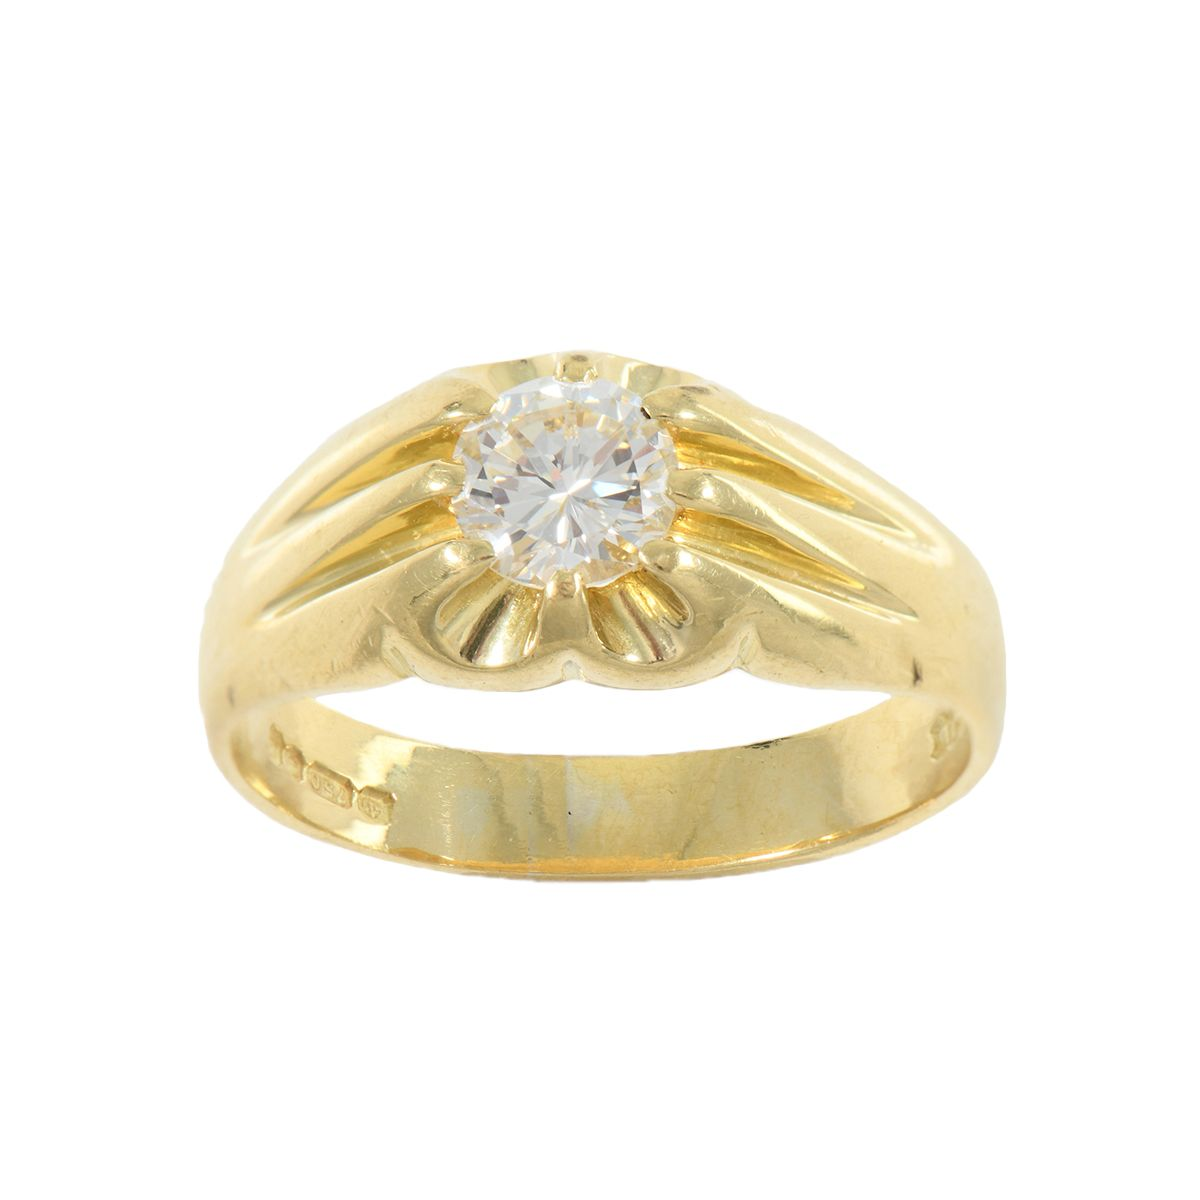 18ct Gold Ladies 0.63ct Solitaire Ring Size P 9TBVY